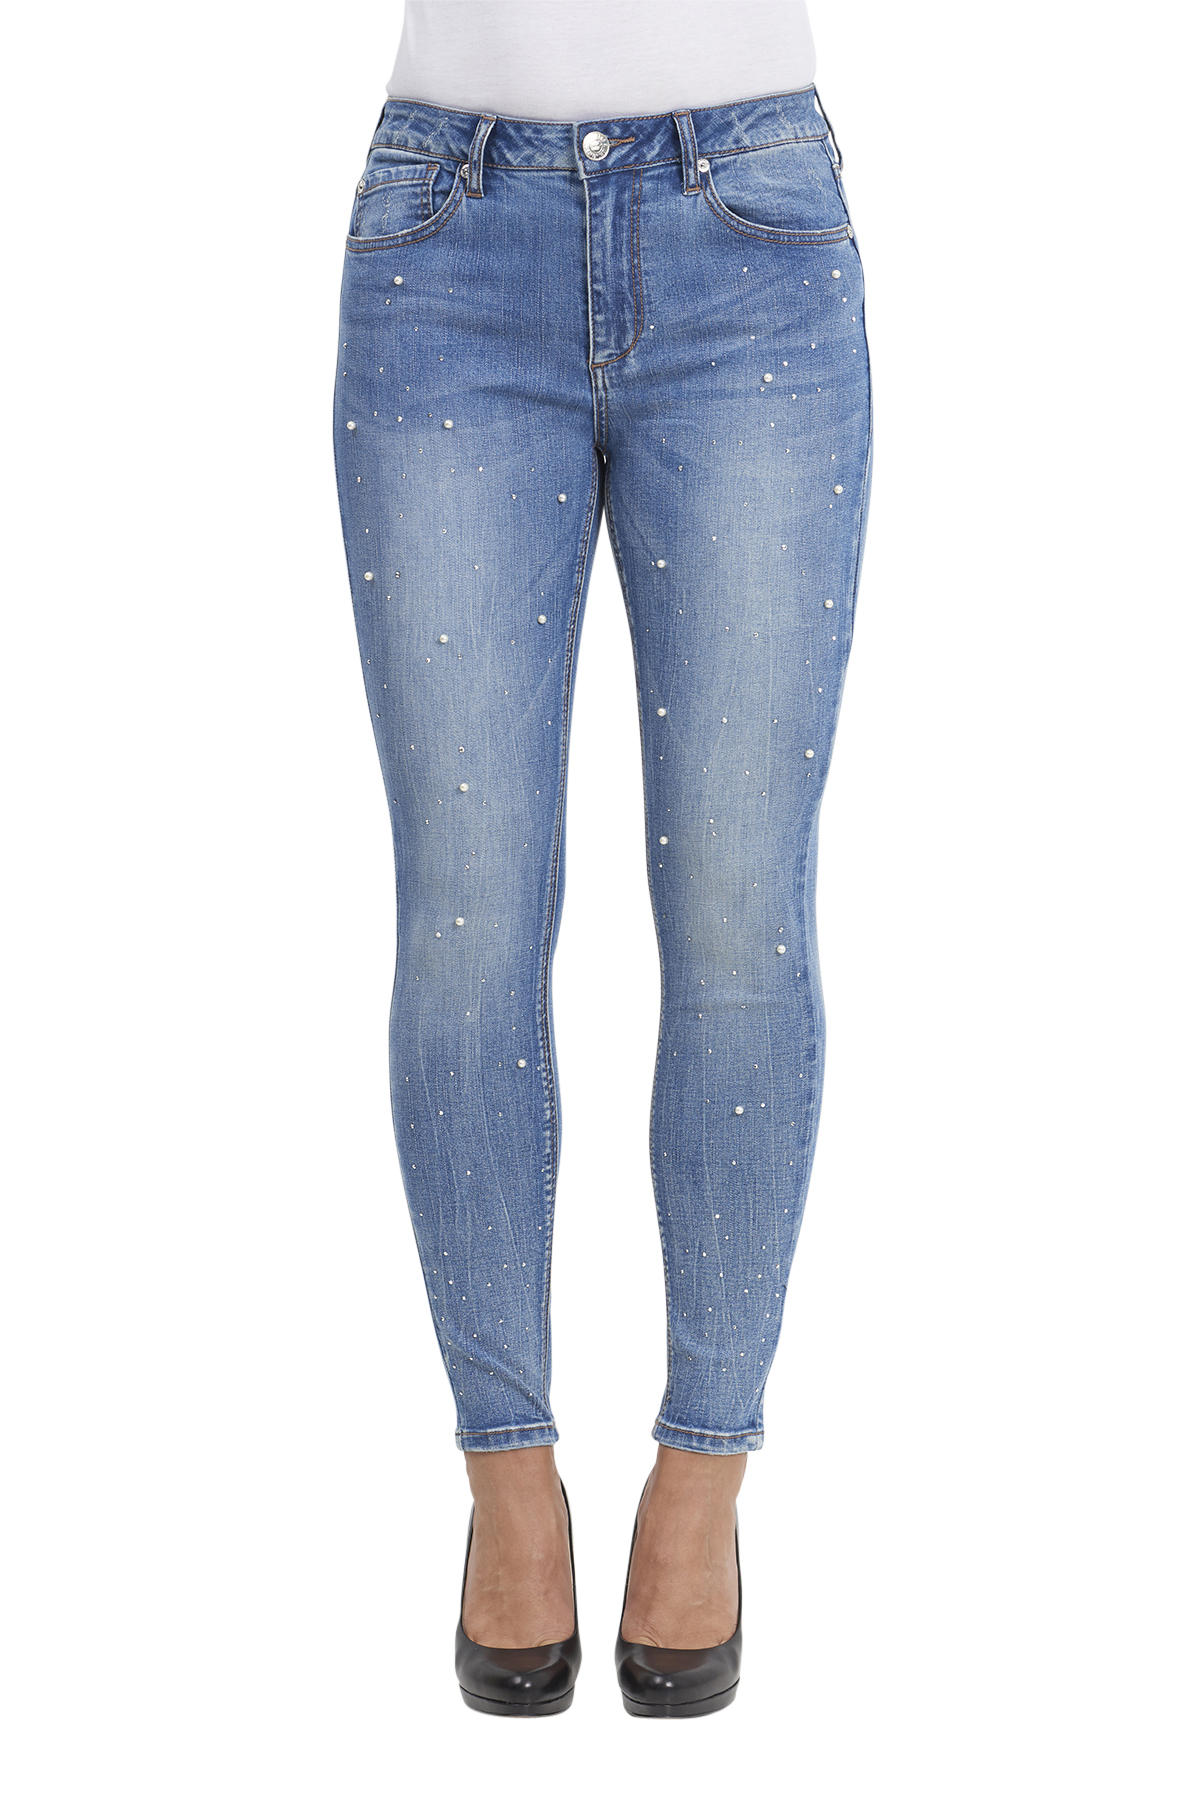 Seven7 Jeans Legging with Pearls